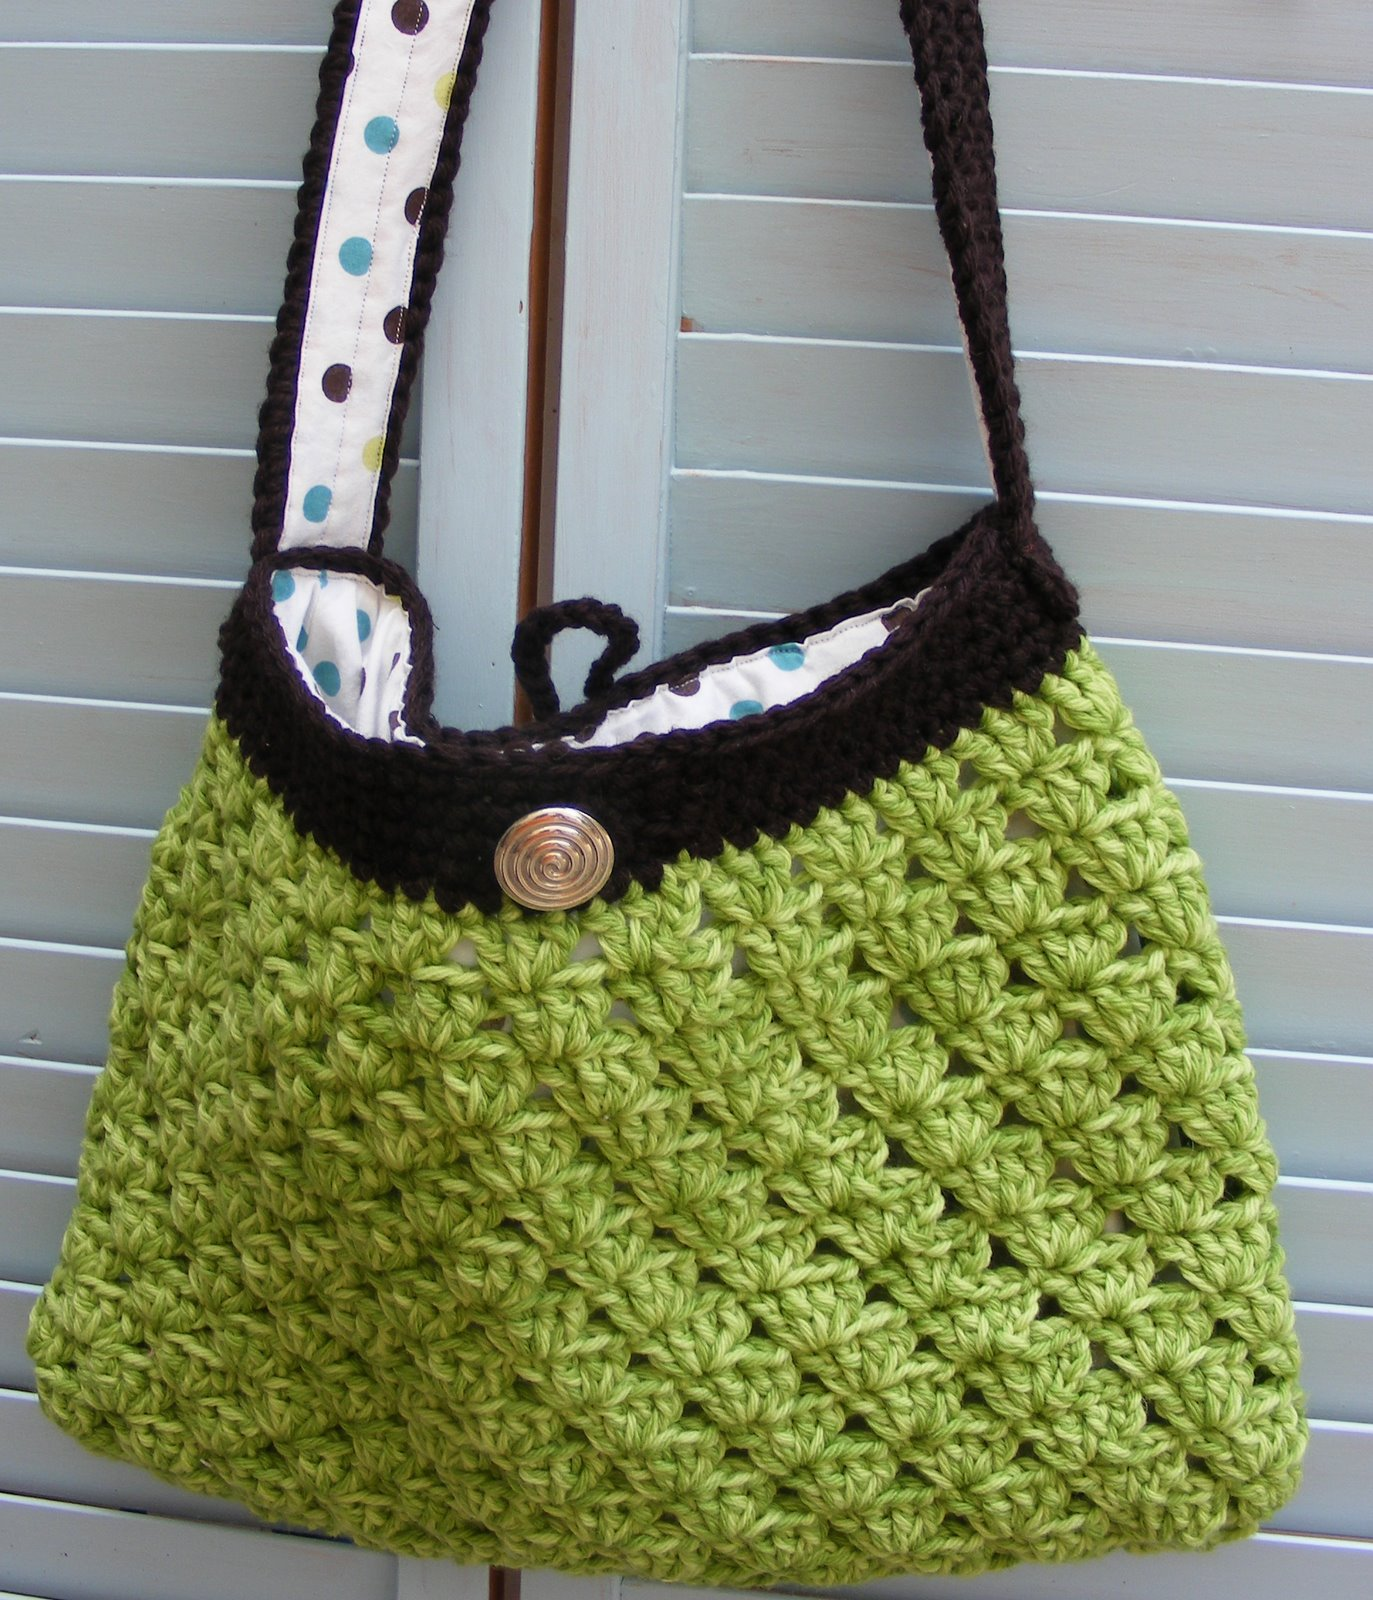 Crochet Bag Pattern Easy : EASY CROCHET BAG PATTERN - Crochet and Knitting Patterns